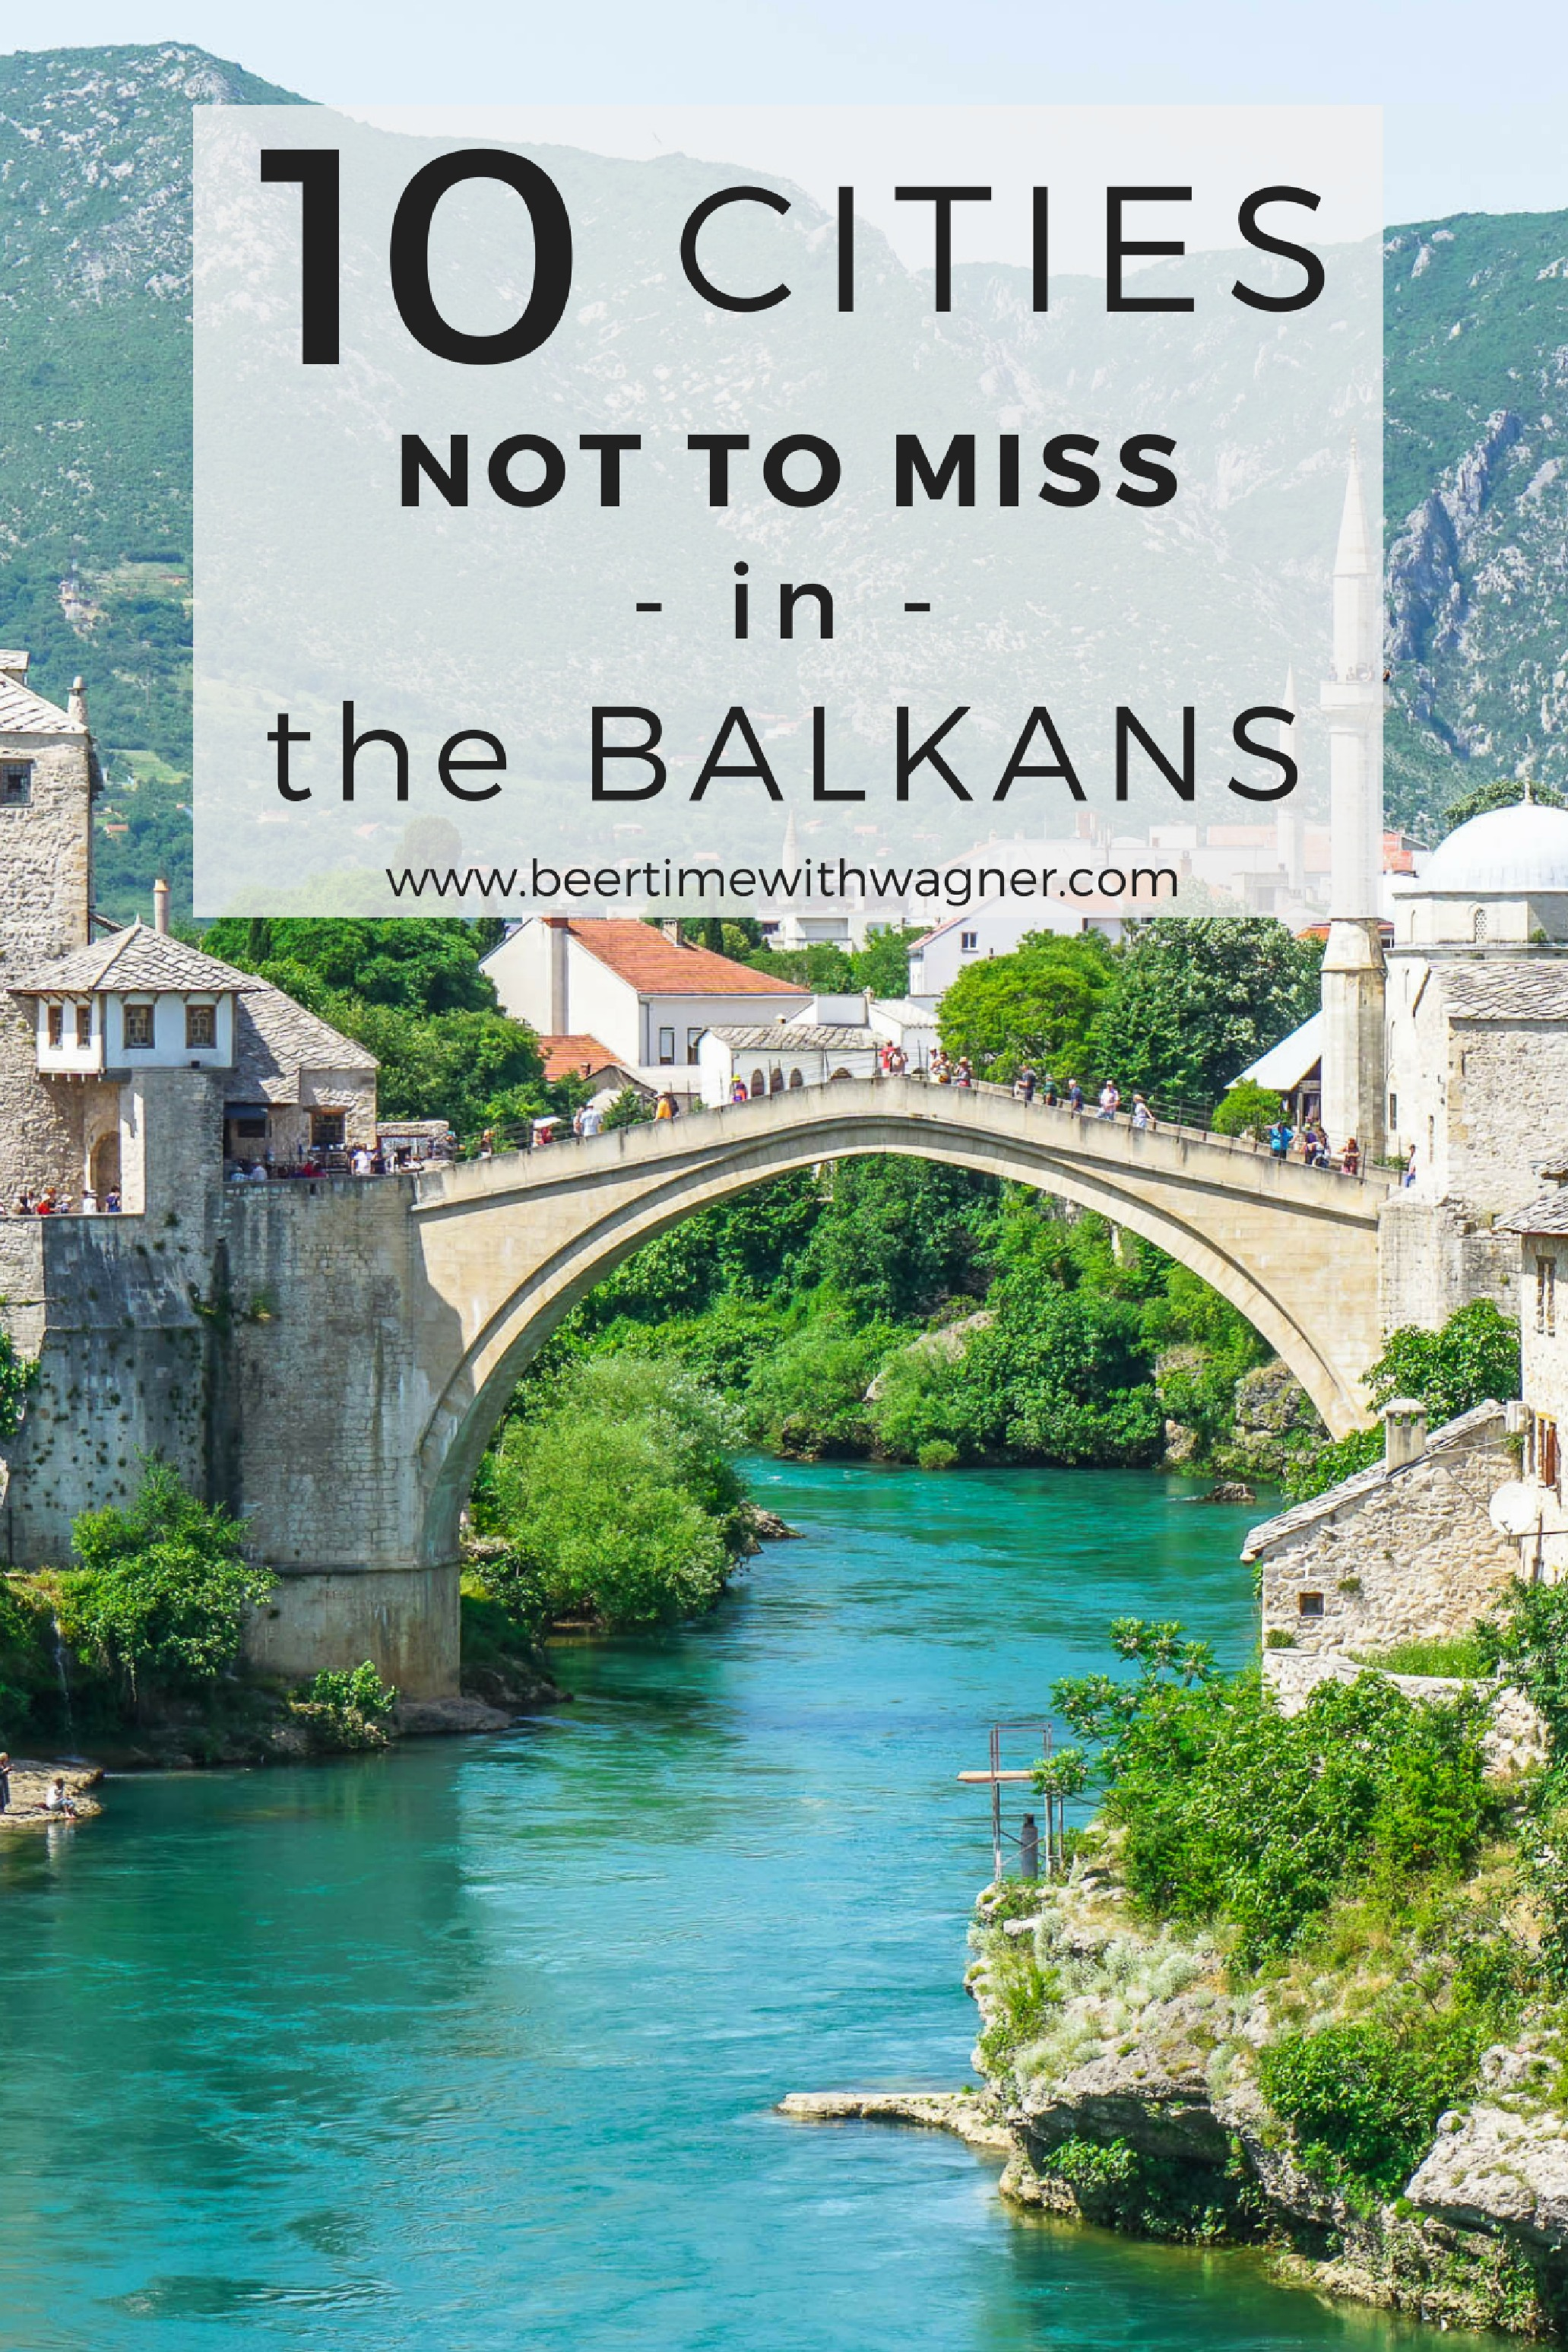 10 Cities in the Balkans via Wayfaring With Wagner